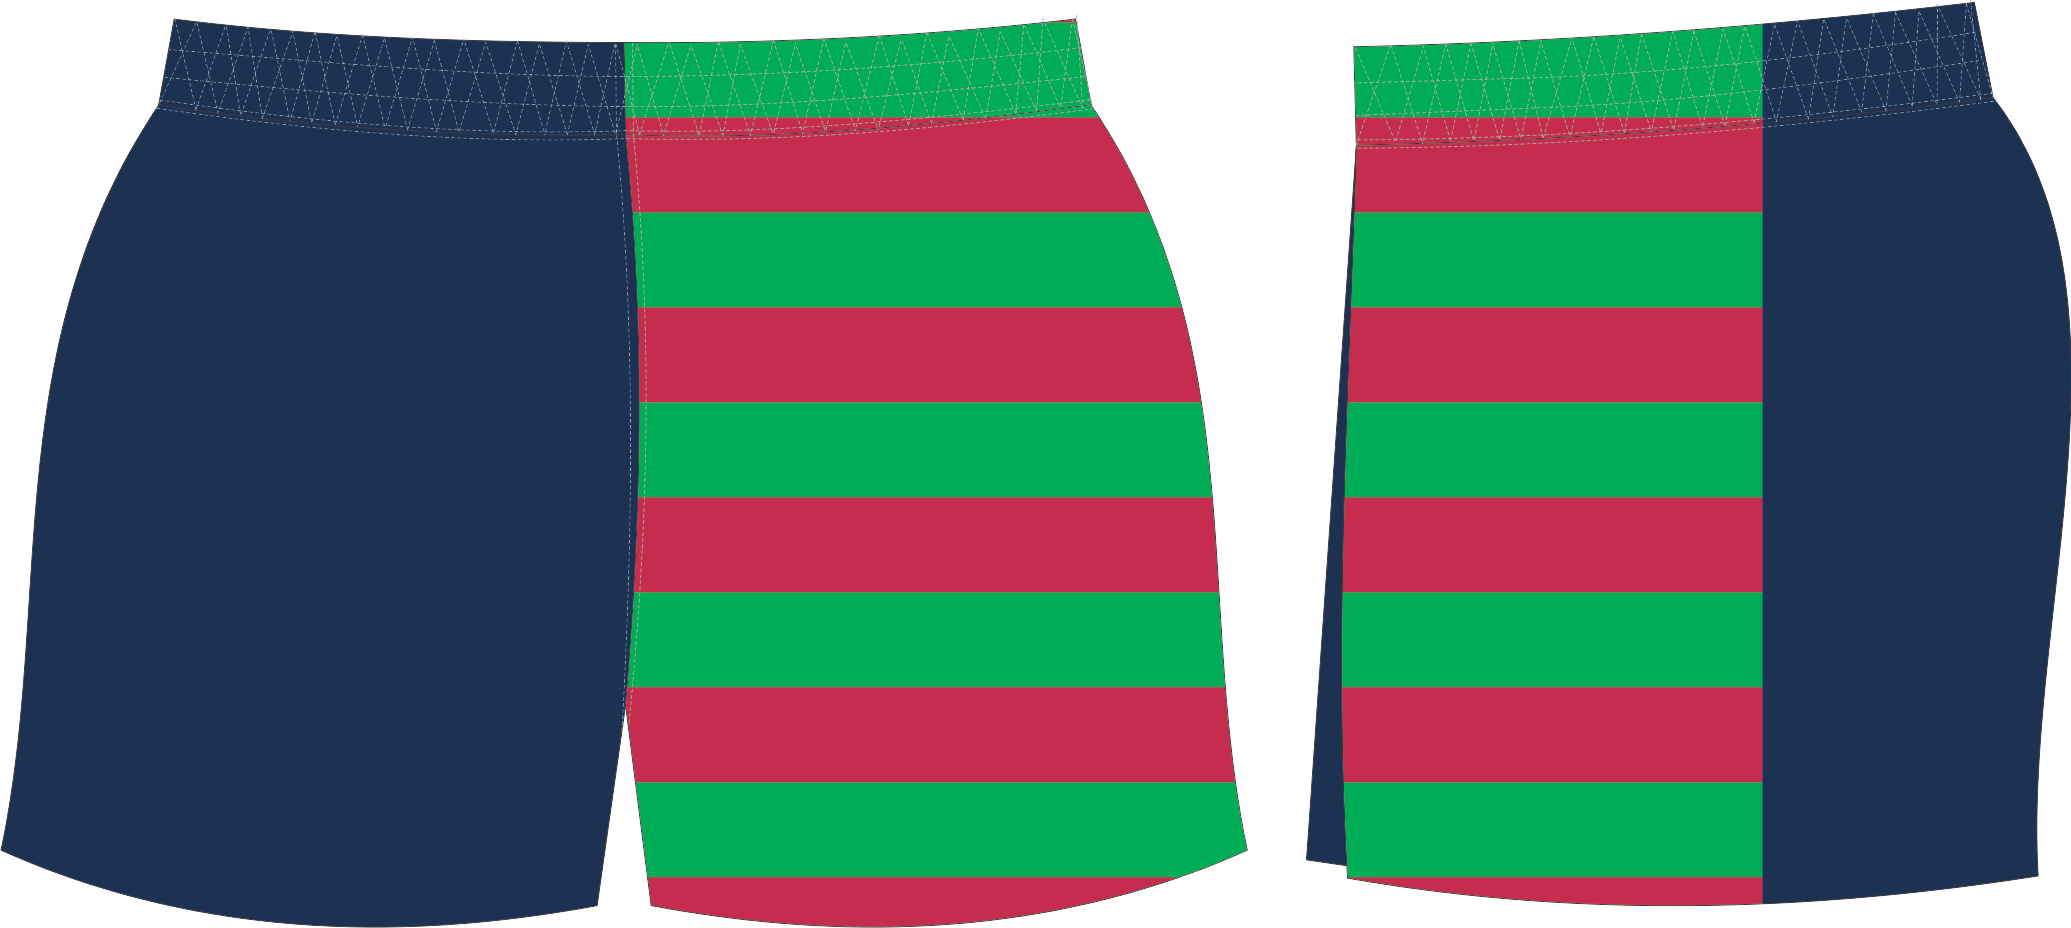 S202XSHT Green Red Navy.png